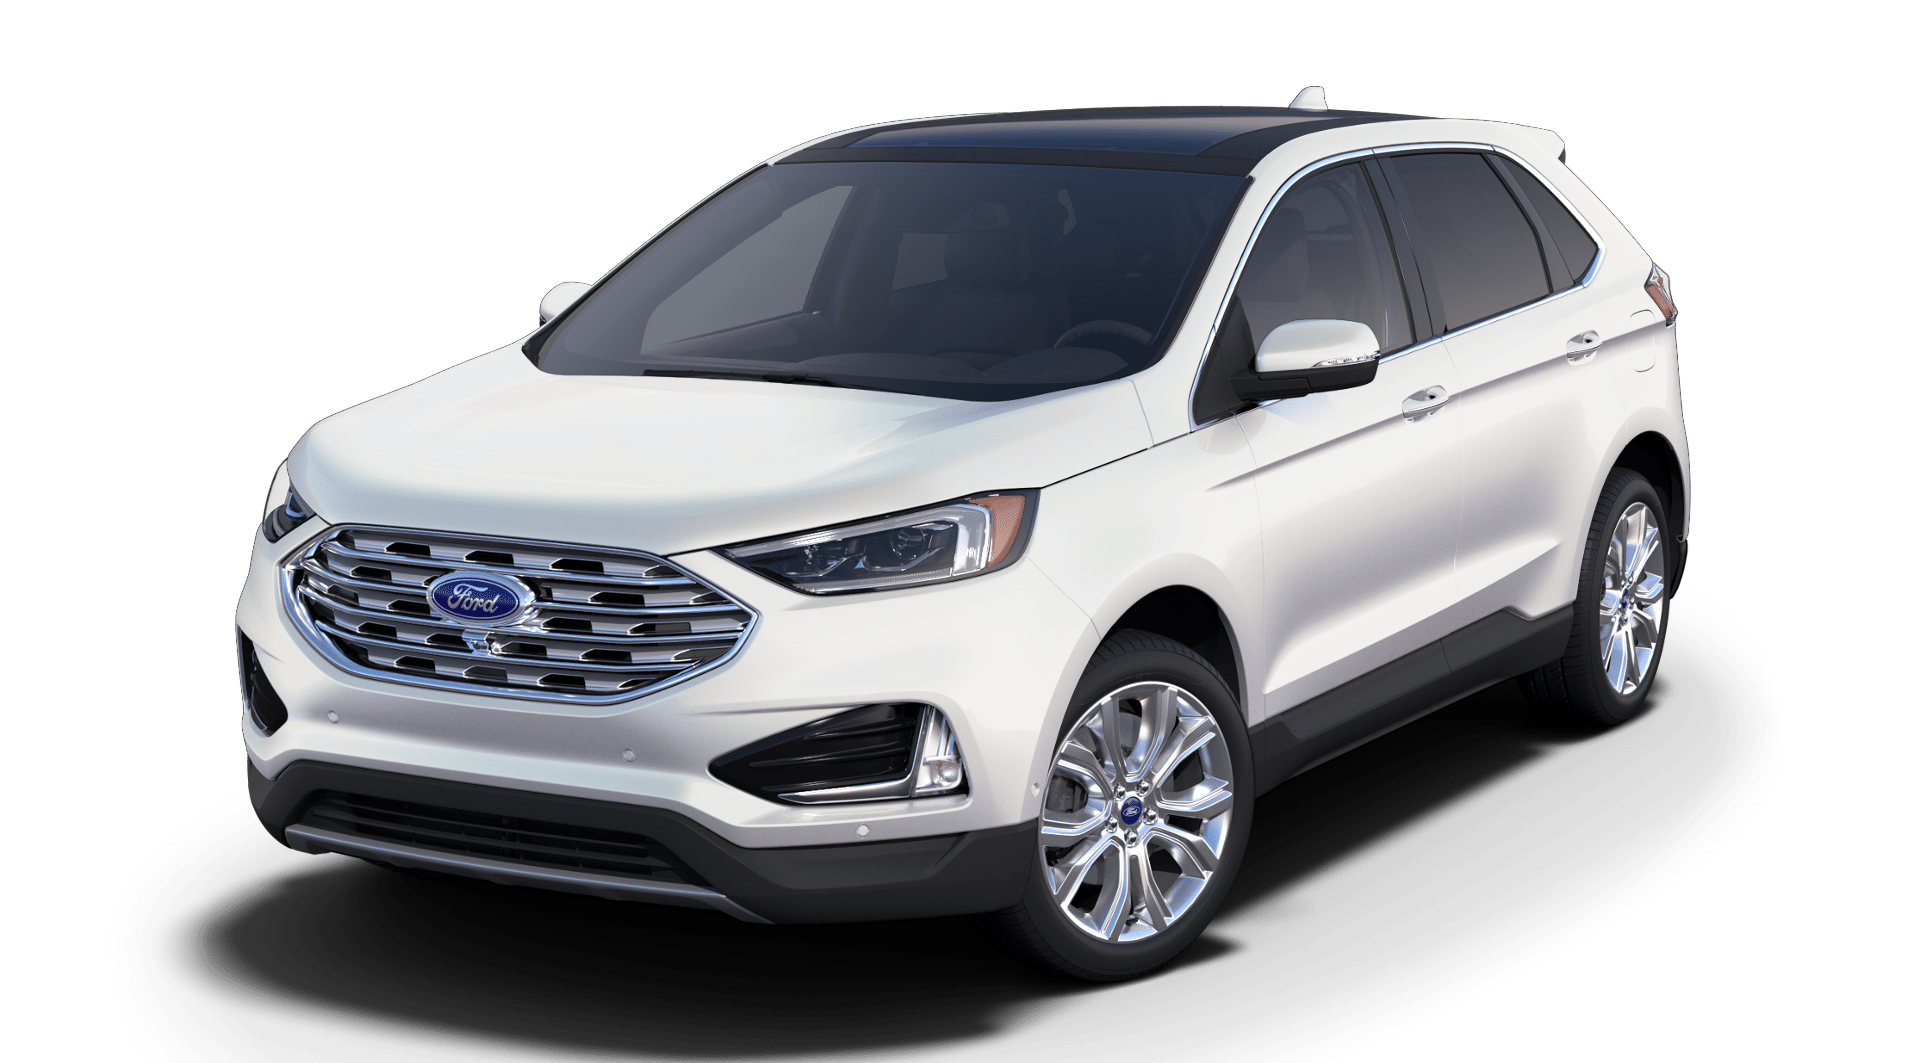 2020 Ford Edge Search Inventory in 2020 Ford edge